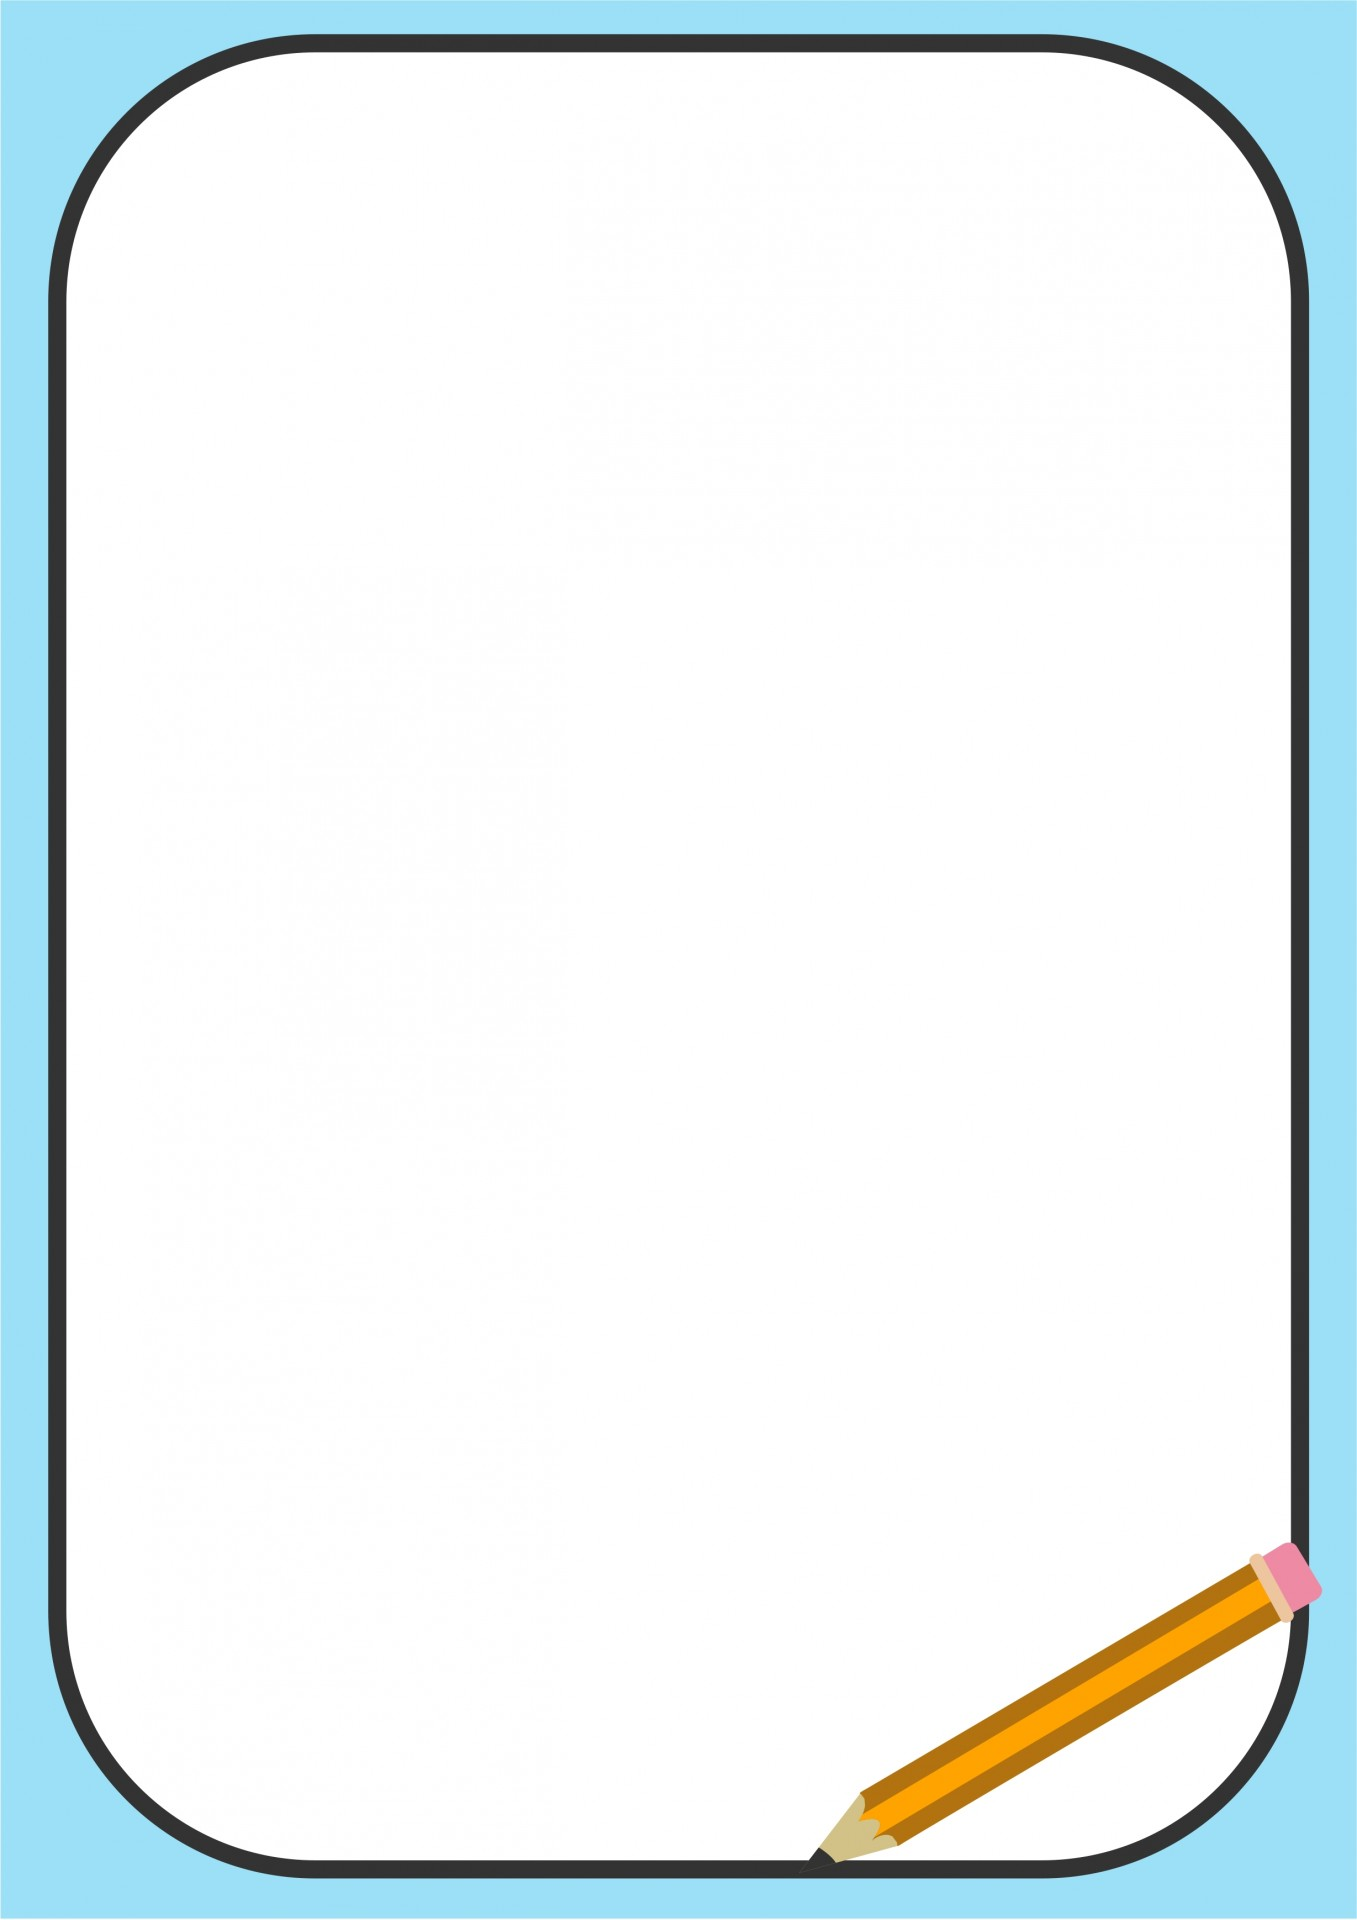 Pencil border free stock. Boarder clipart